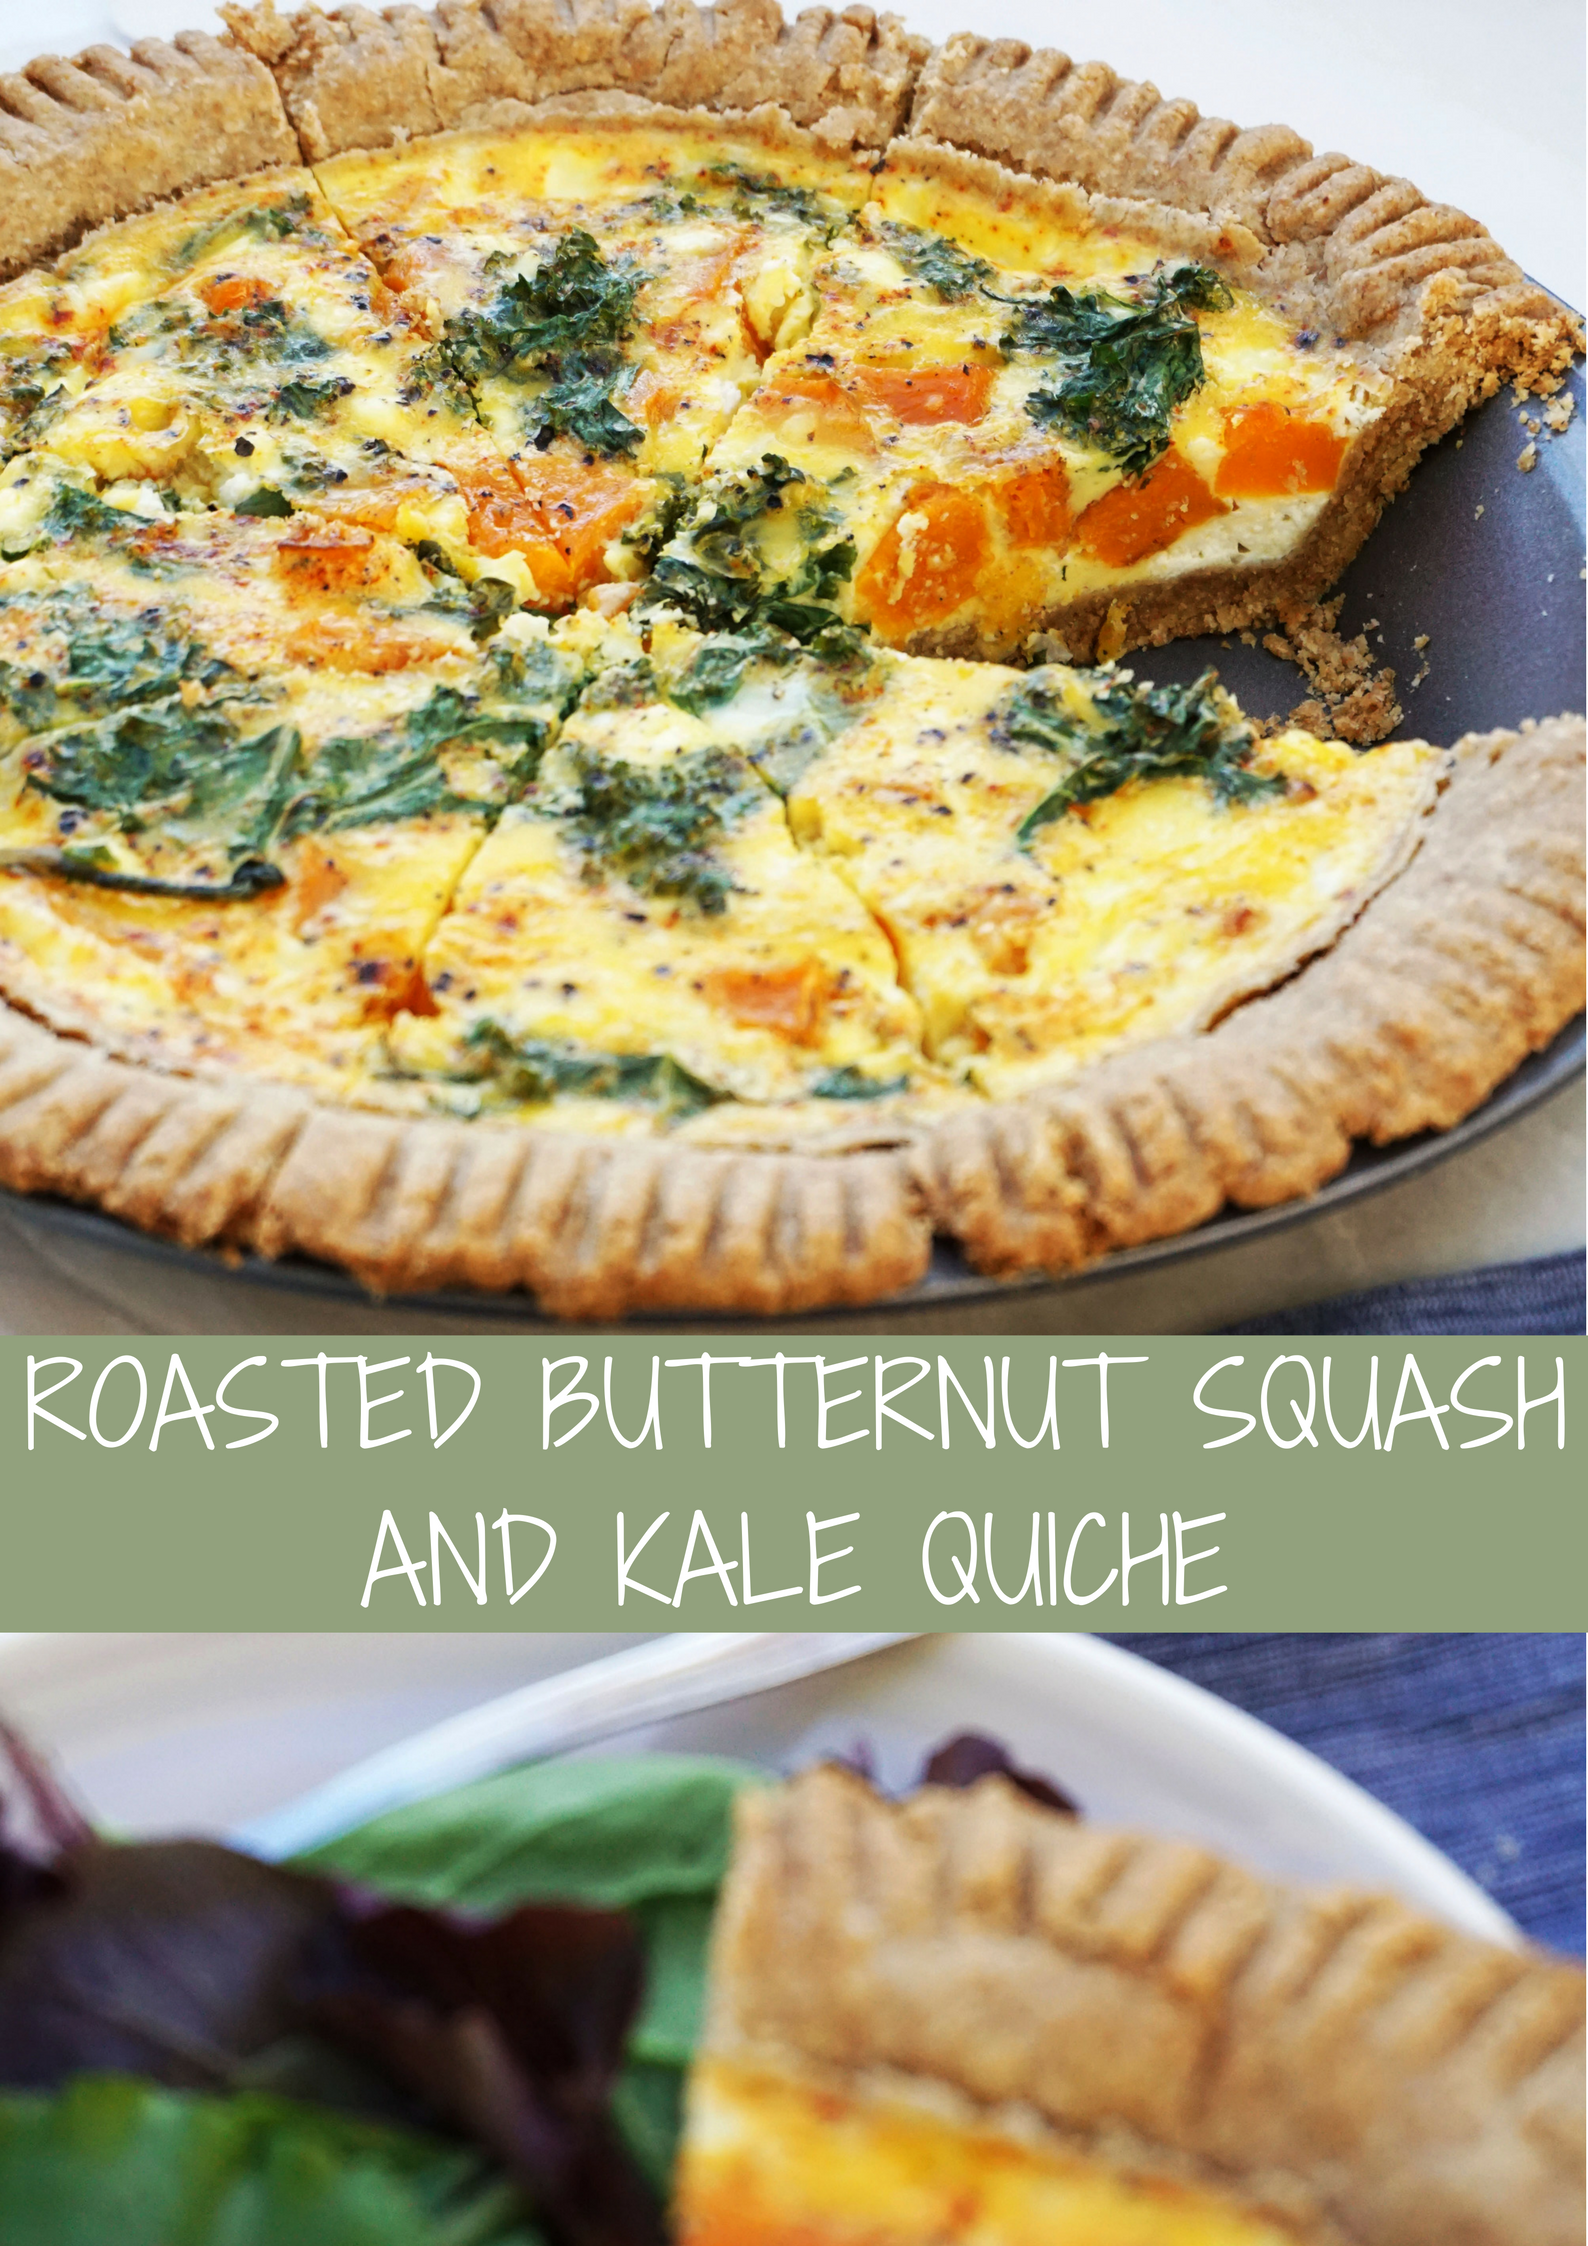 ROASTED BUTTERNUT SQUASH AND KALE QUICHE.png